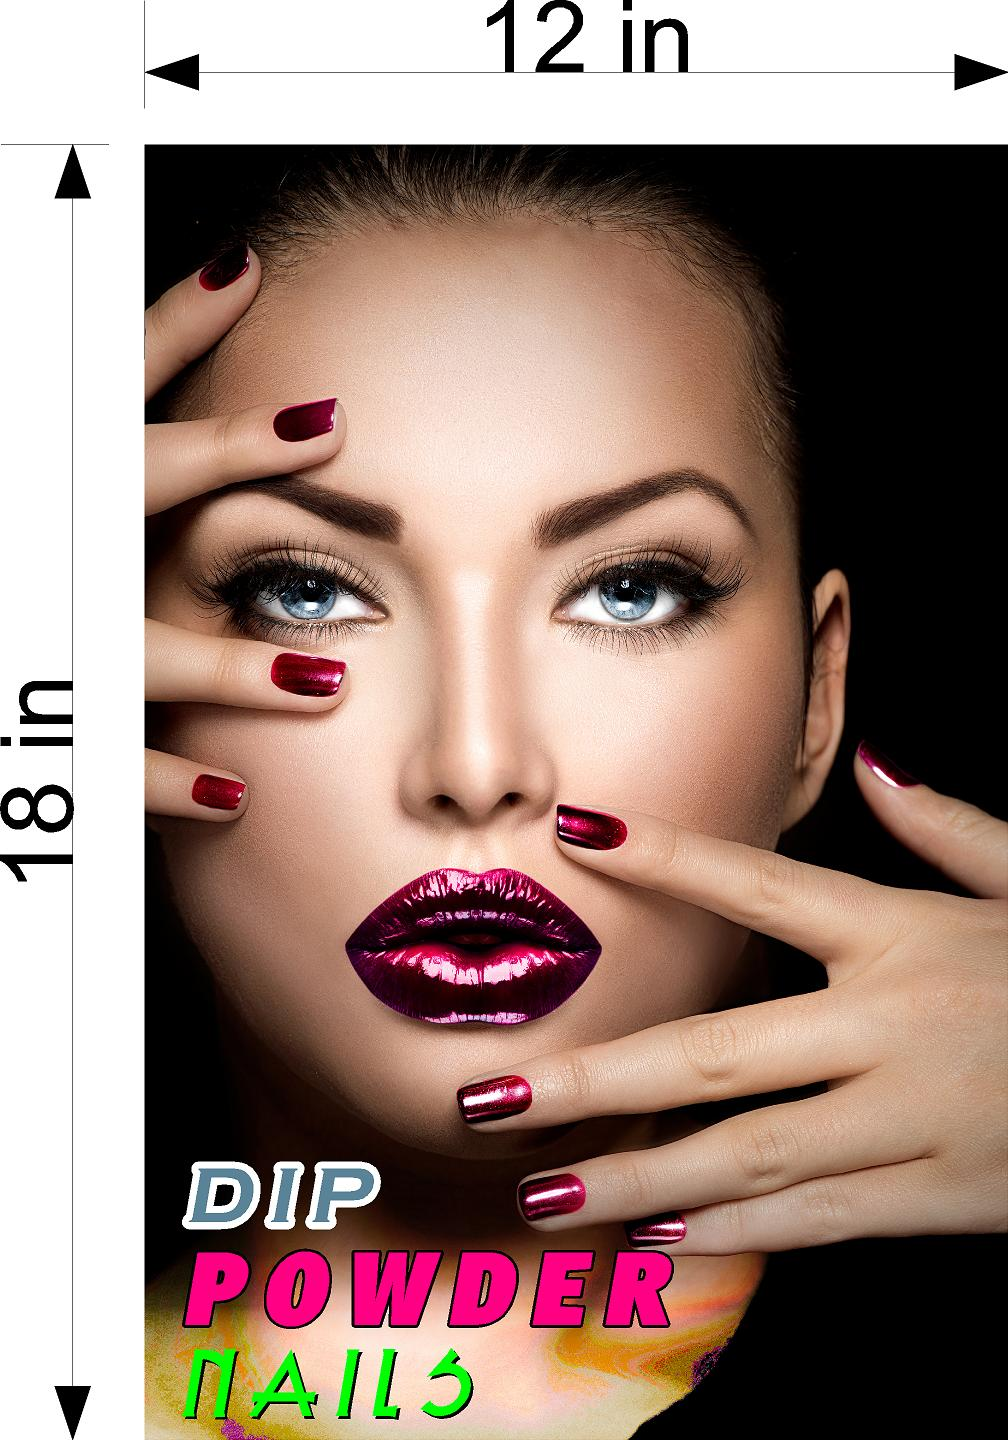 Dip Powder 02 Wallpaper Poster Decal with Adhesive Backing Wall Sticker Decor Nail Salon Sign Vertical